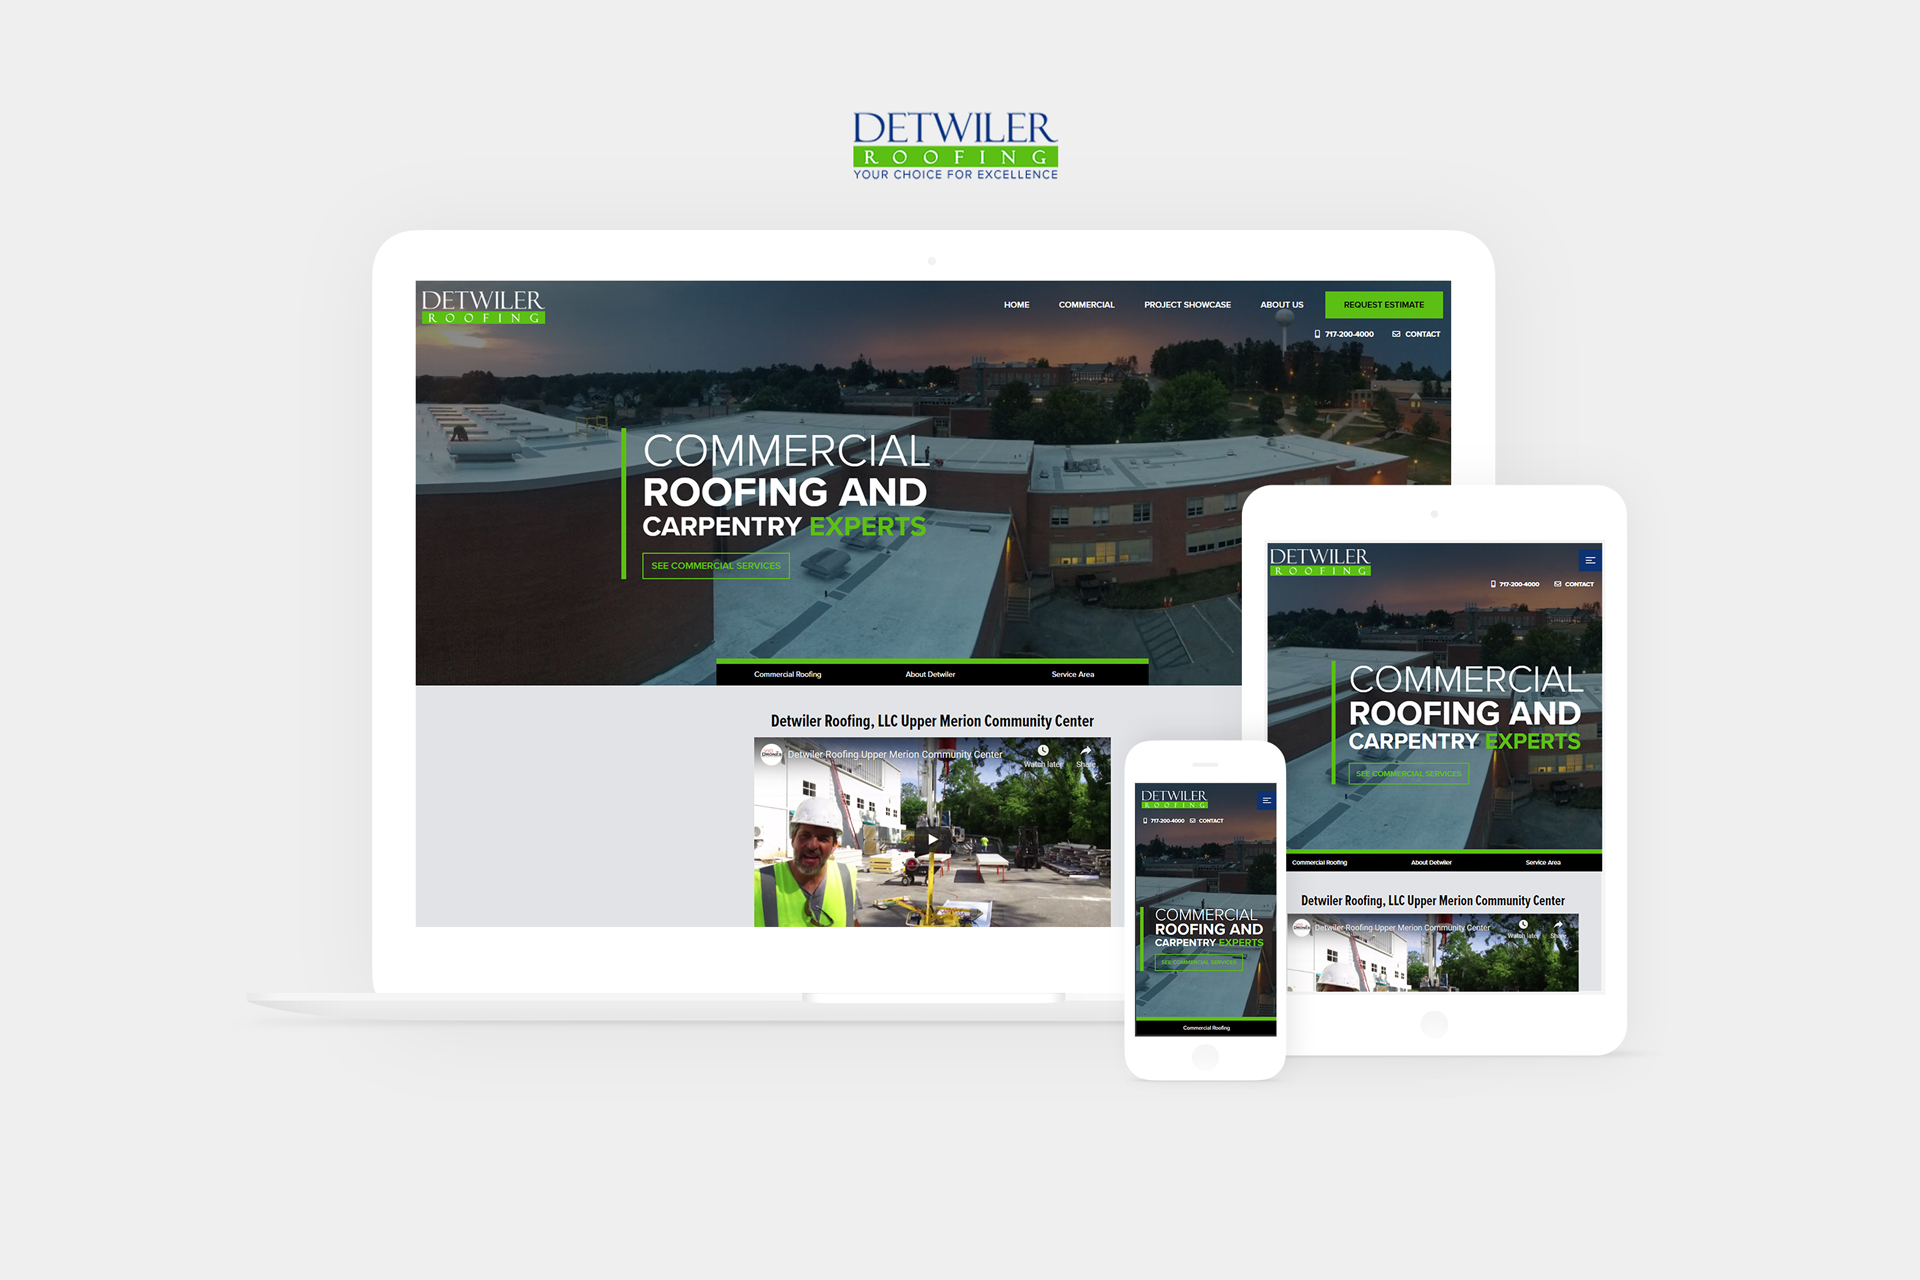 detwiler roofing website displayed on laptop, tablet, and phone